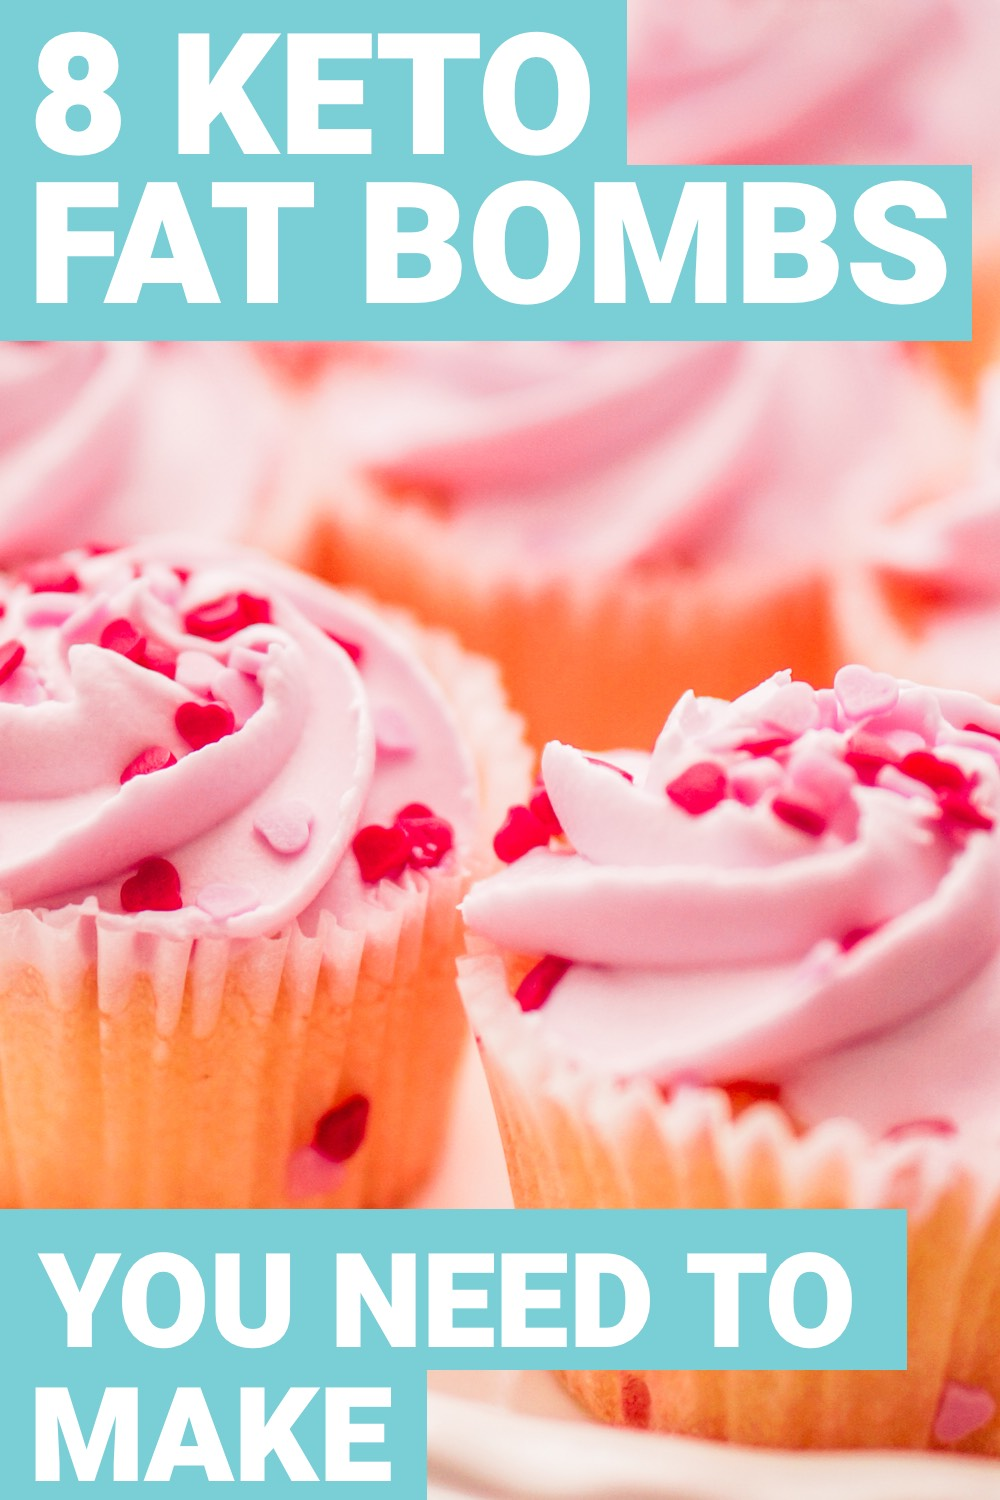 Keto fat bombs are a great way to make sure you reach your daily macro fats. These are some great fat bombs that I've found for the ketogenic diet. #Keto #KetogenicDiet